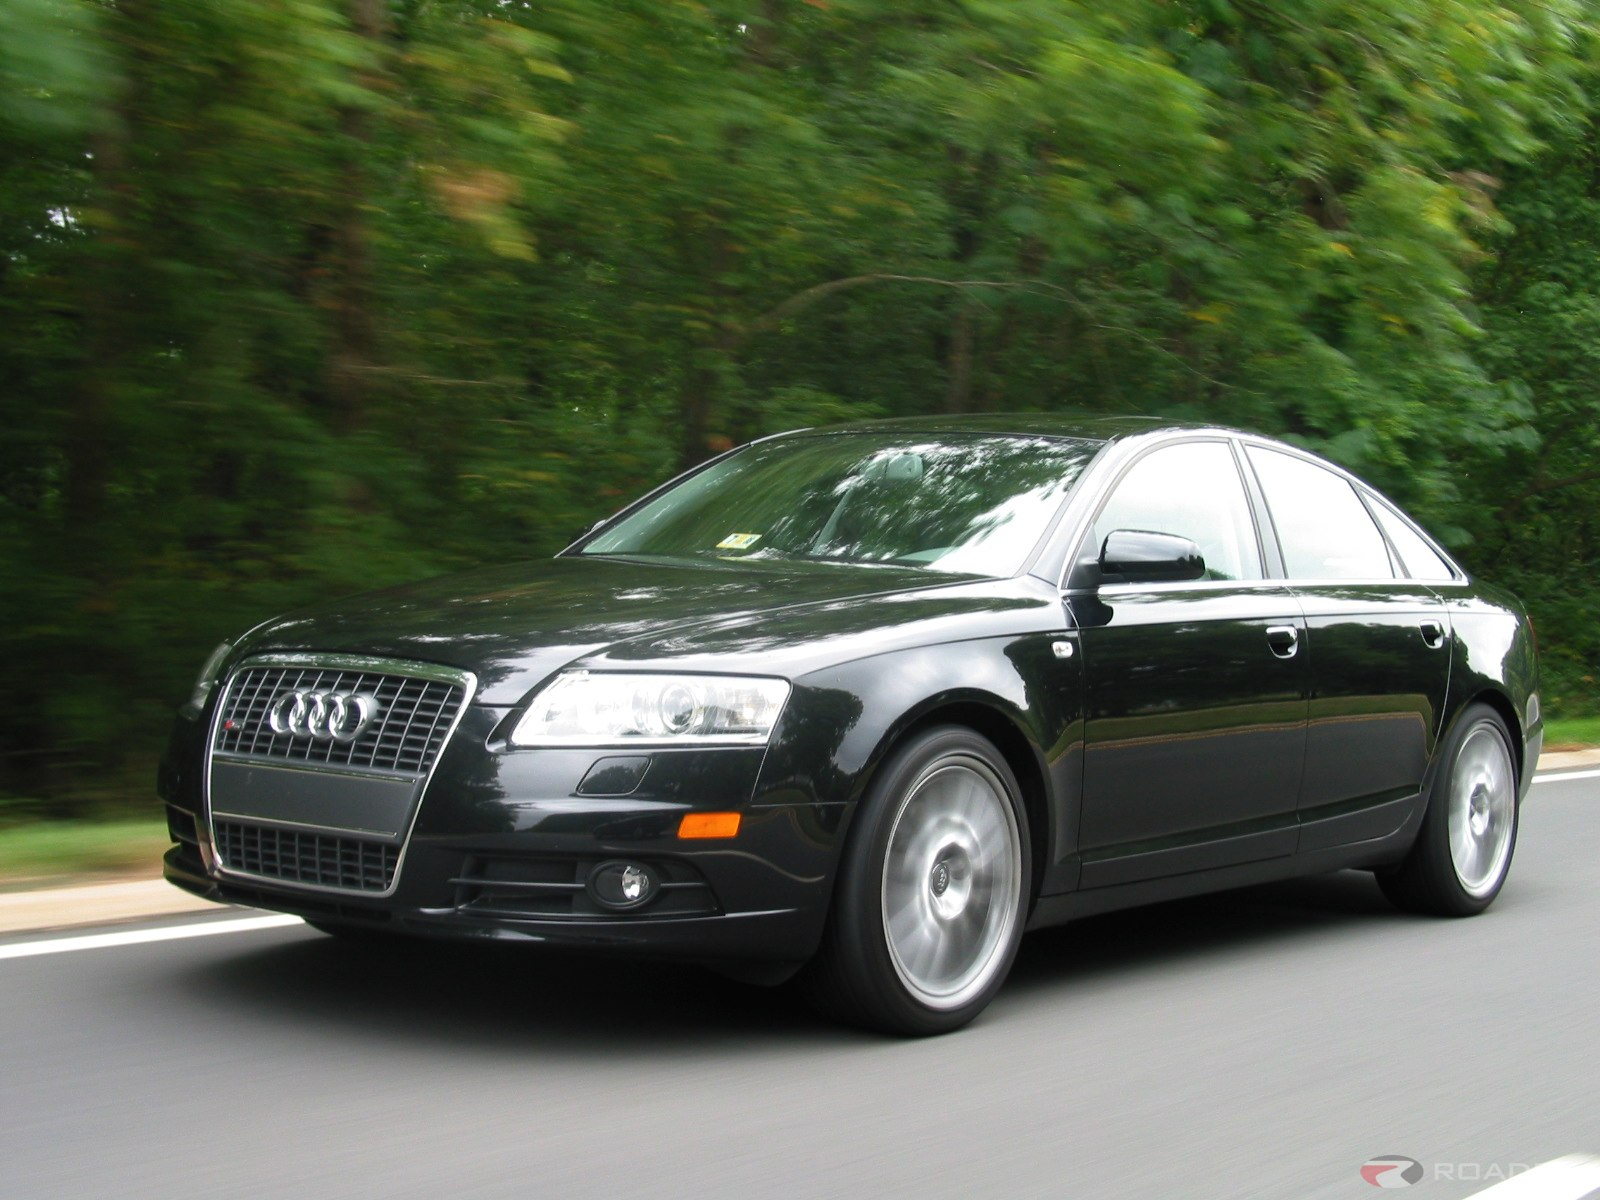 2007 Audi A6 - Information and photos - ZombieDrive  Audi A Black on 07 dodge 3500 black, 07 acura mdx black, 07 chevy malibu black, 07 dodge charger black, 07 jeep compass black, 07 hummer h2 black, 07 dodge nitro black, 07 chevy avalanche black, 07 ford fusion black, 07 honda accord black, 07 cadillac srx black,